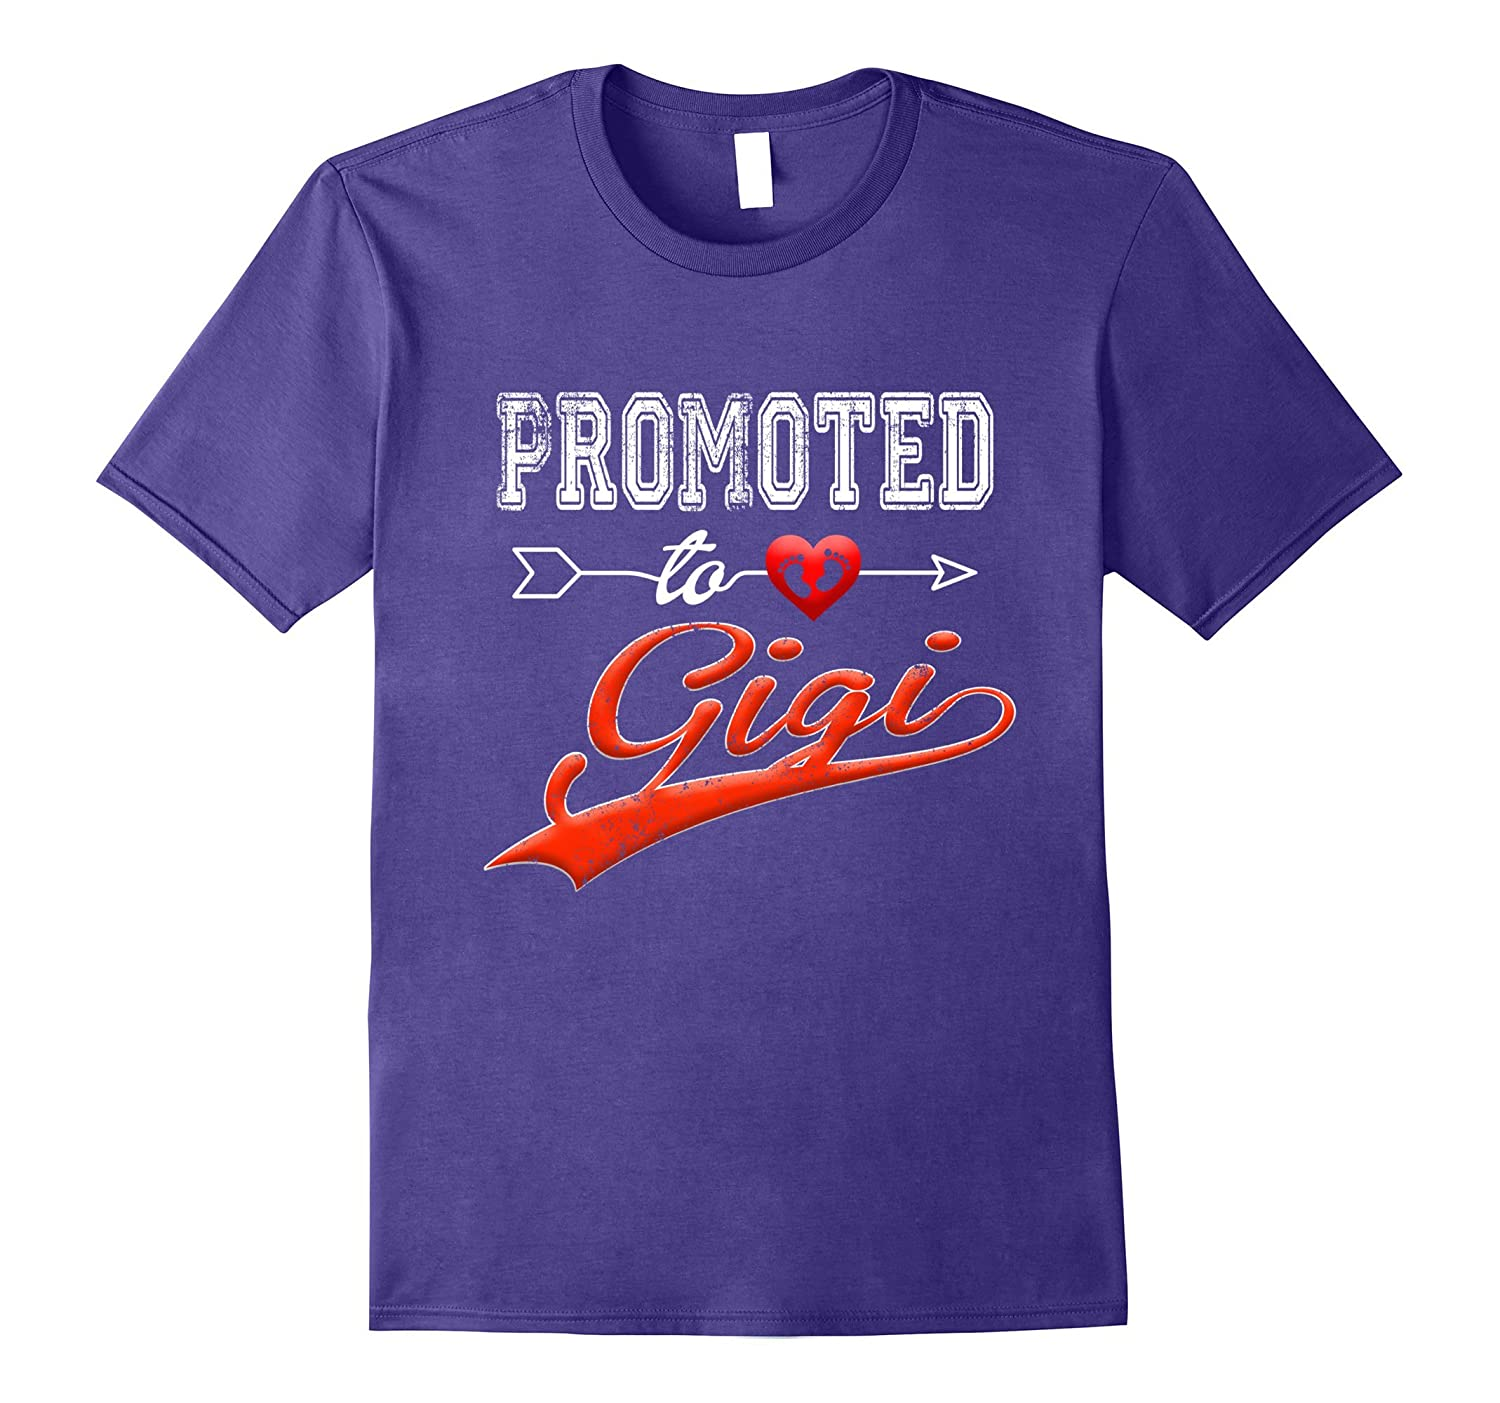 Promoted To Gigi Shirt 2018-FL